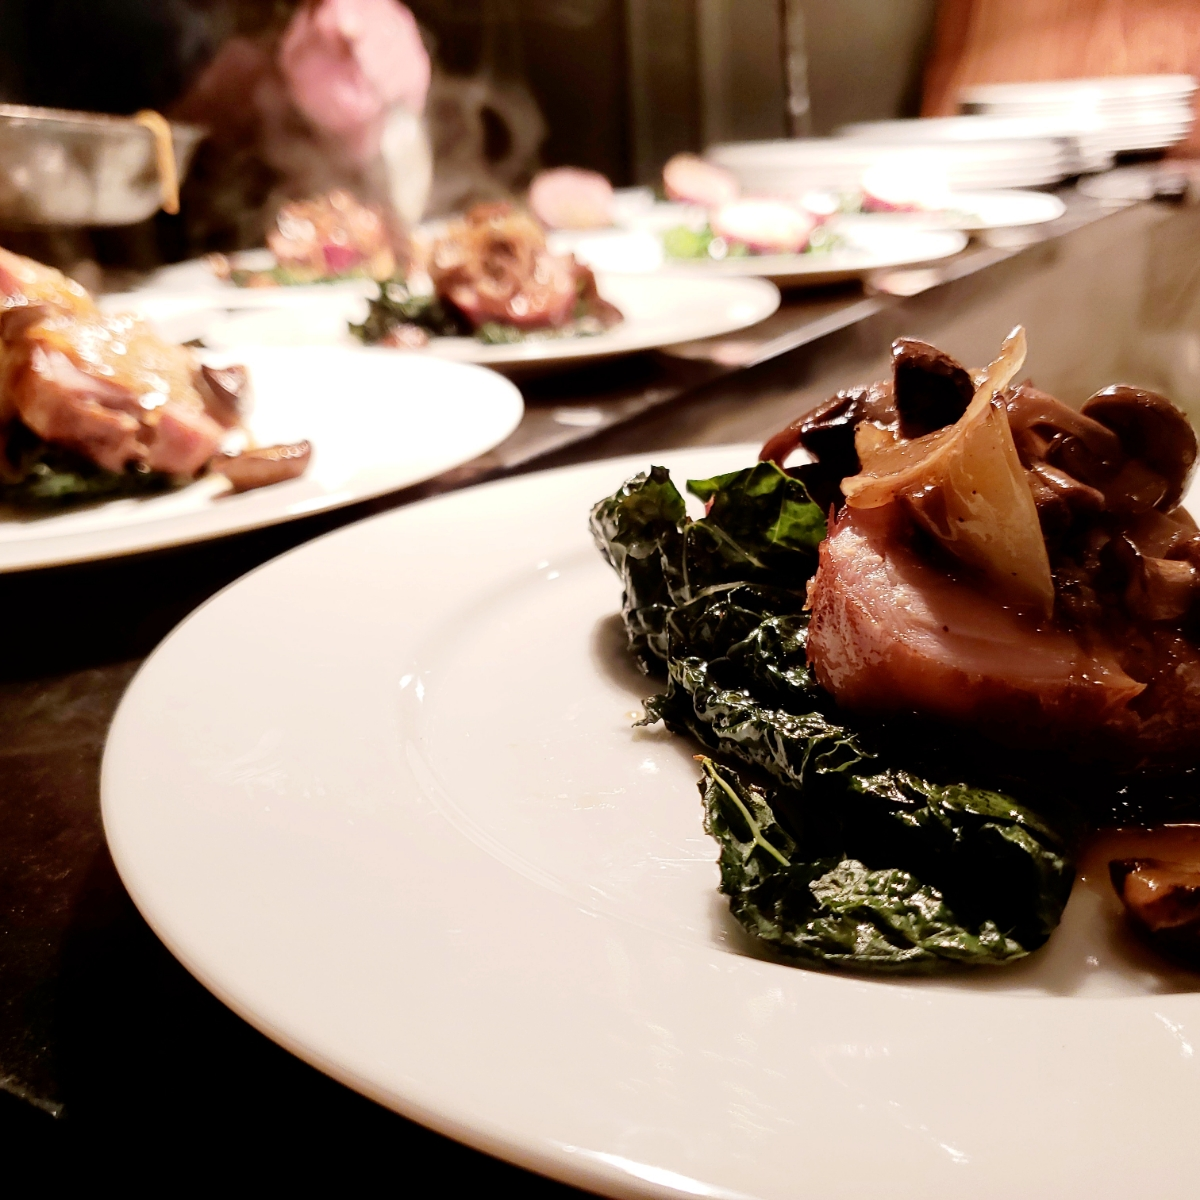 Five-course seasonal tasting menu created by Chef Paul Virant, customized for your group -